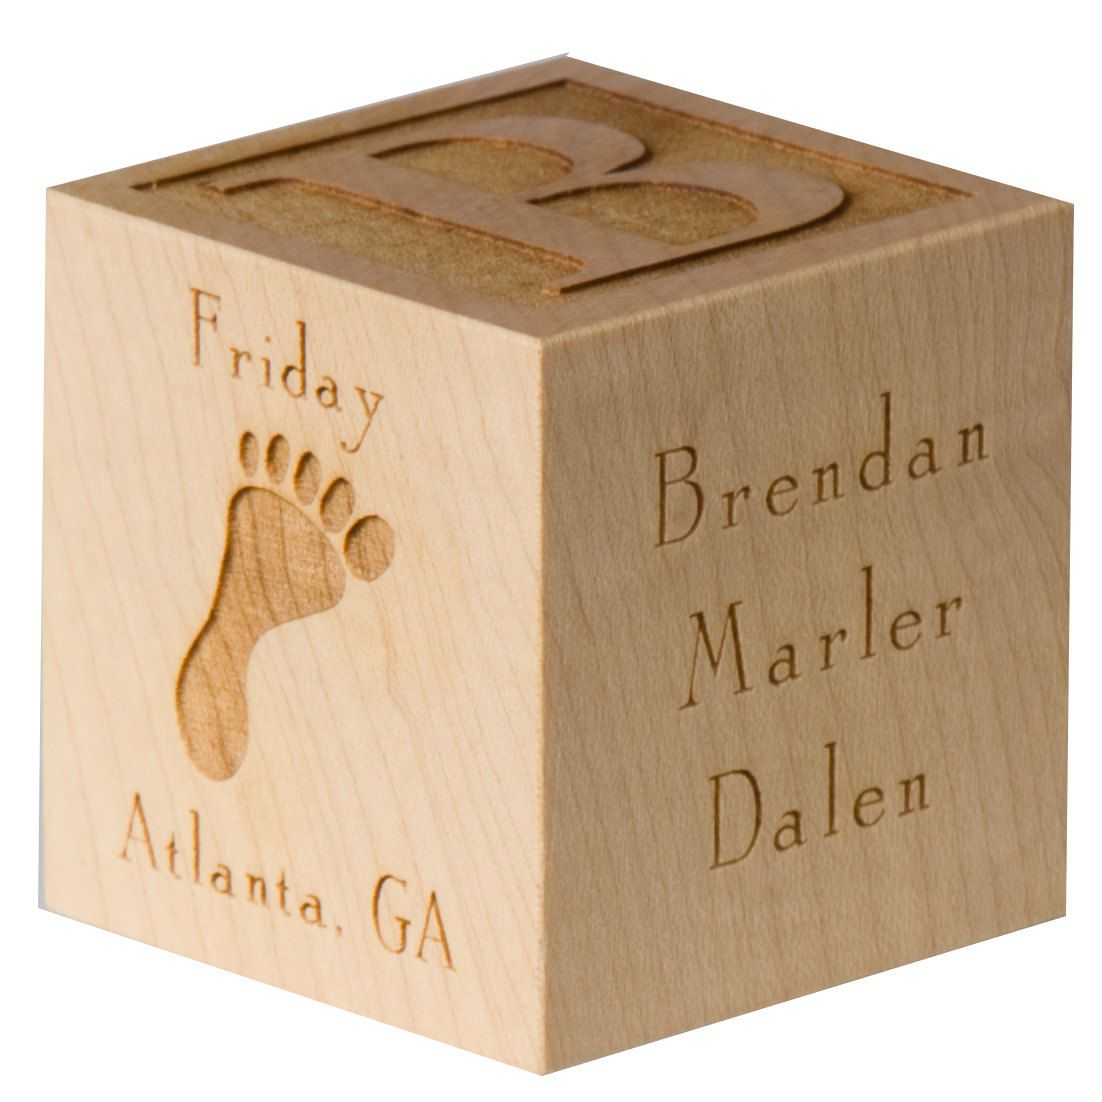 Personalized baby block new baby gift newborn baby gift personalized personalized baby block new baby gift newborn baby gift personalized baby gift newborn gift wooden baby block nursery decor gift for twins negle Image collections